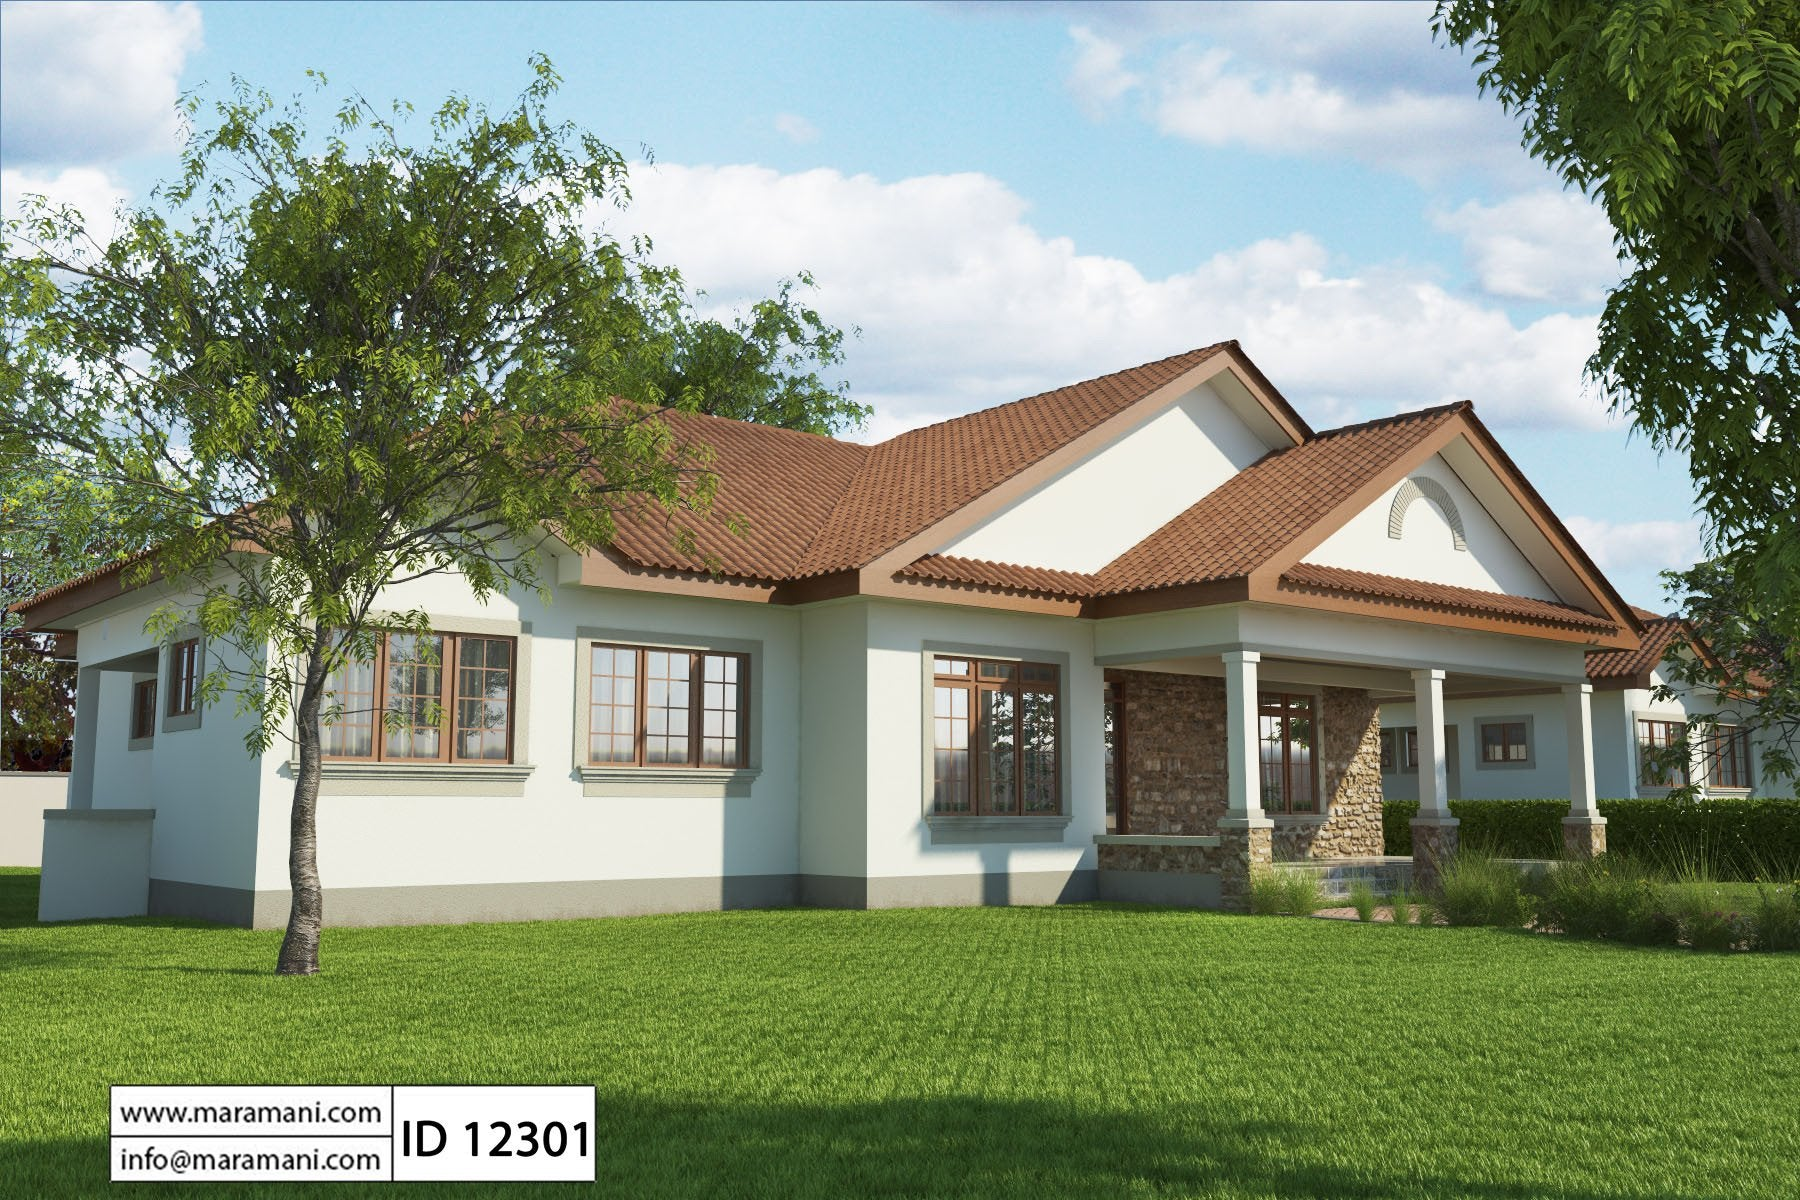 Simple 2 bedroom house plan id 13402 house designs by maramani - Two bedroom houses attic ...